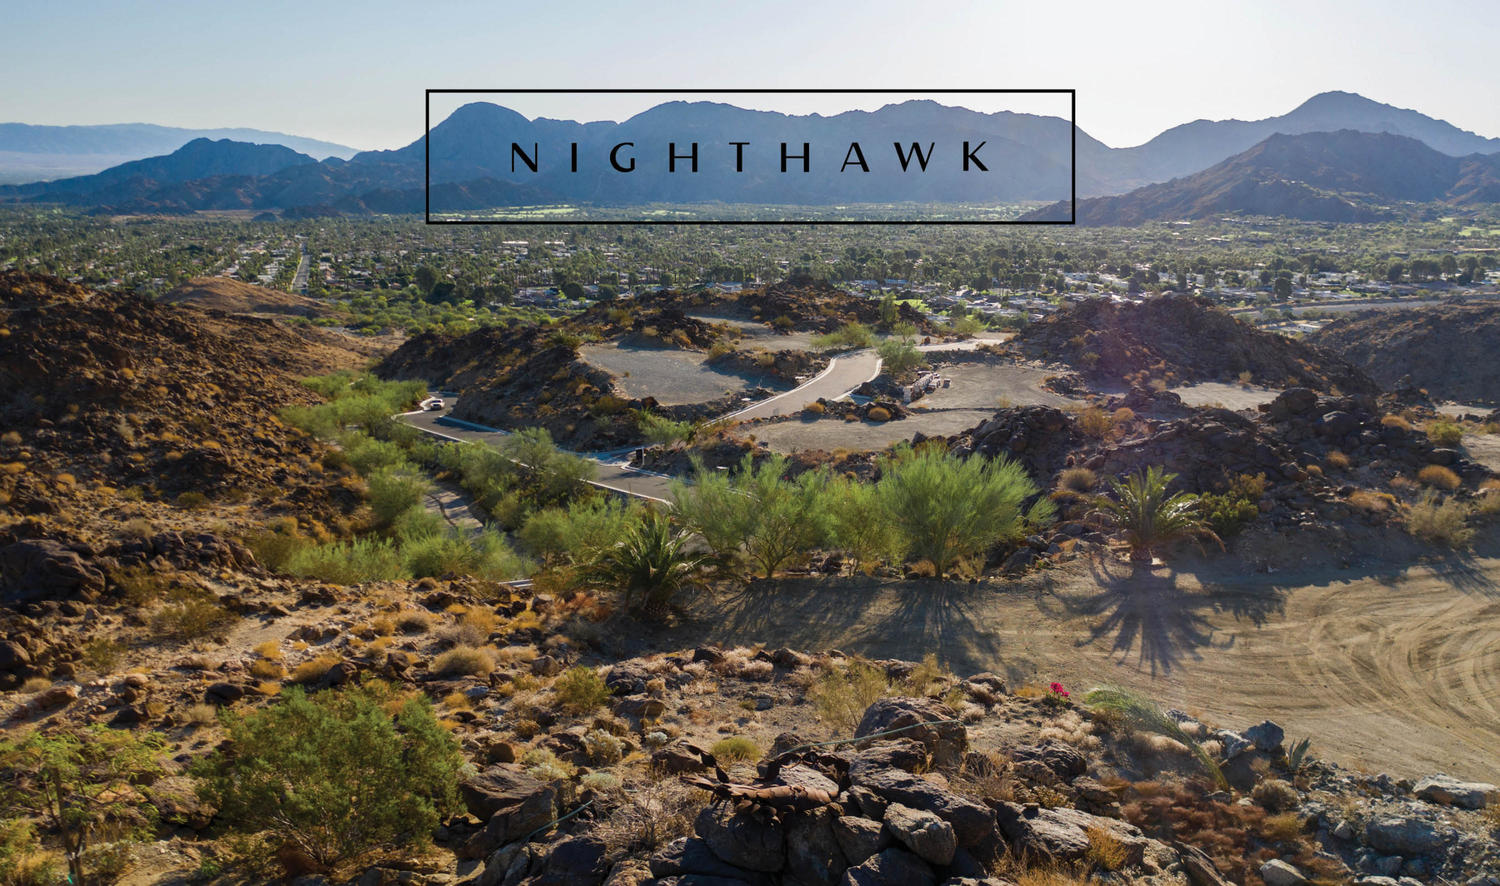 Lot 7 Nighthawk Estates, Lot 7 Palm Desert, CA 92260